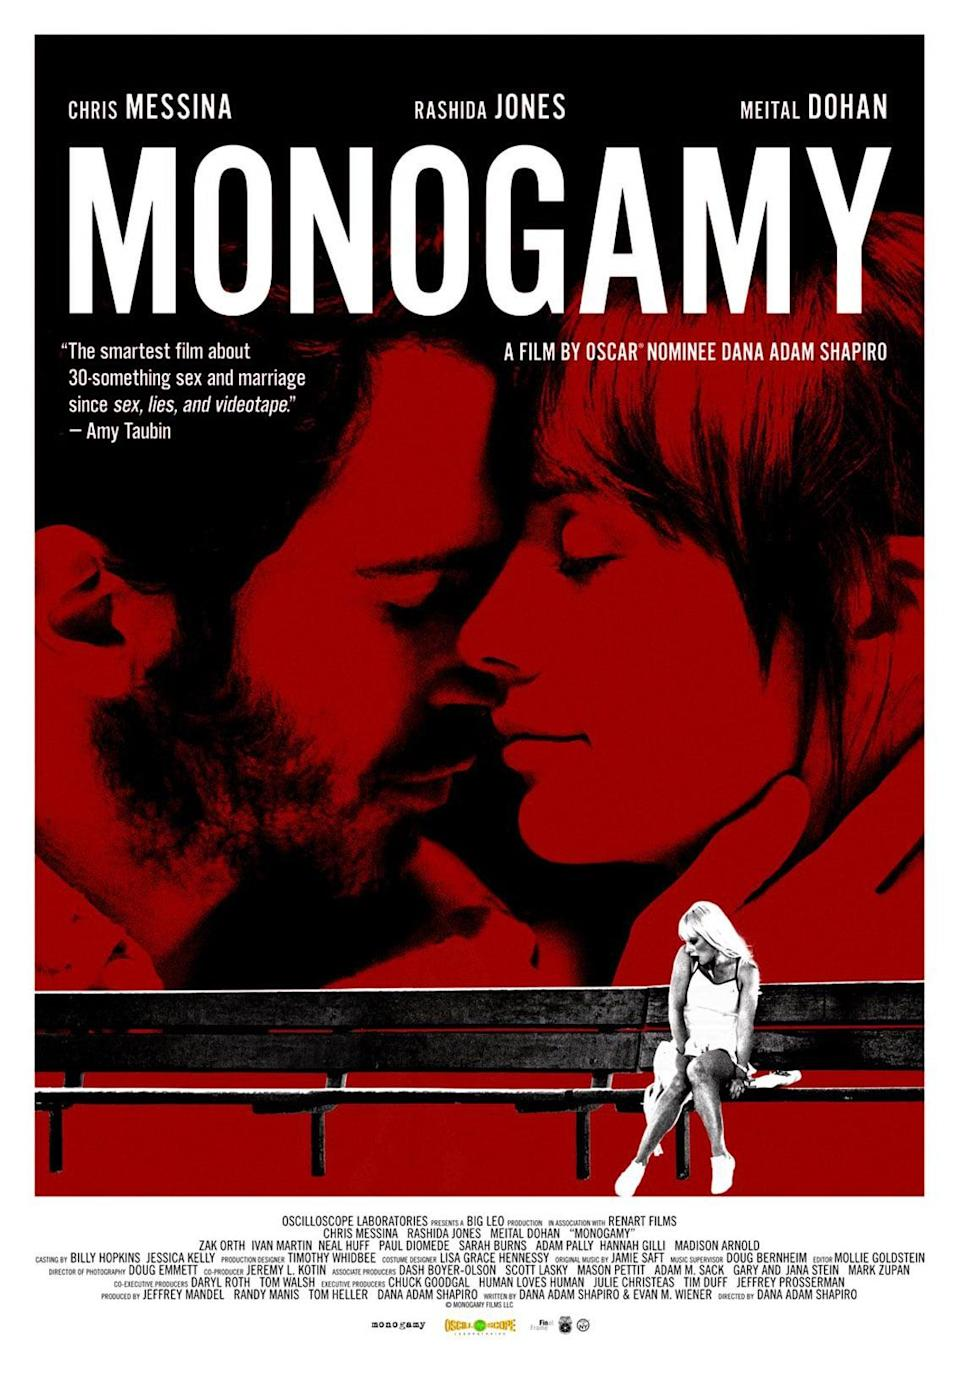 "<p>When a photographer begins to fall for his client, it puts his relationship at risk in the film starring Rashida Jones and Chris Messina.</p> <p><a href=""http://www.hulu.com/movie/monogamy-e0697737-97e9-48ab-882c-7f53a9b3fe71"" class=""link rapid-noclick-resp"" rel=""nofollow noopener"" target=""_blank"" data-ylk=""slk:Watch Monogamy on Hulu now."">Watch <strong>Monogamy</strong> on Hulu now.</a><br></p>"